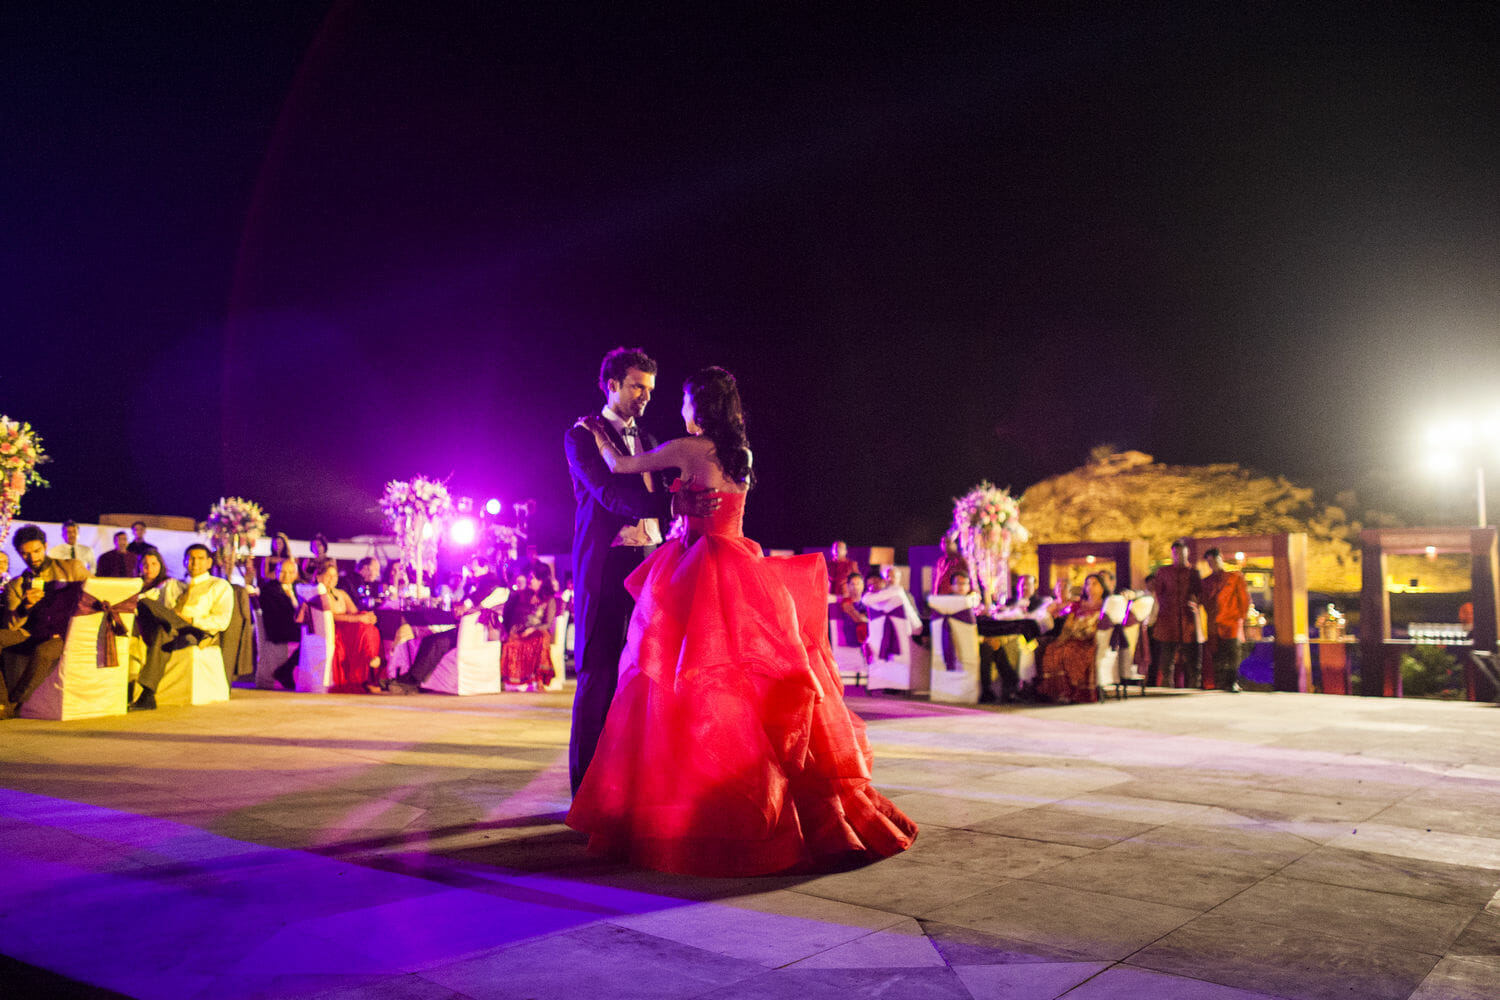 destination-indian-wedding-jaipur-anika-vijay-332